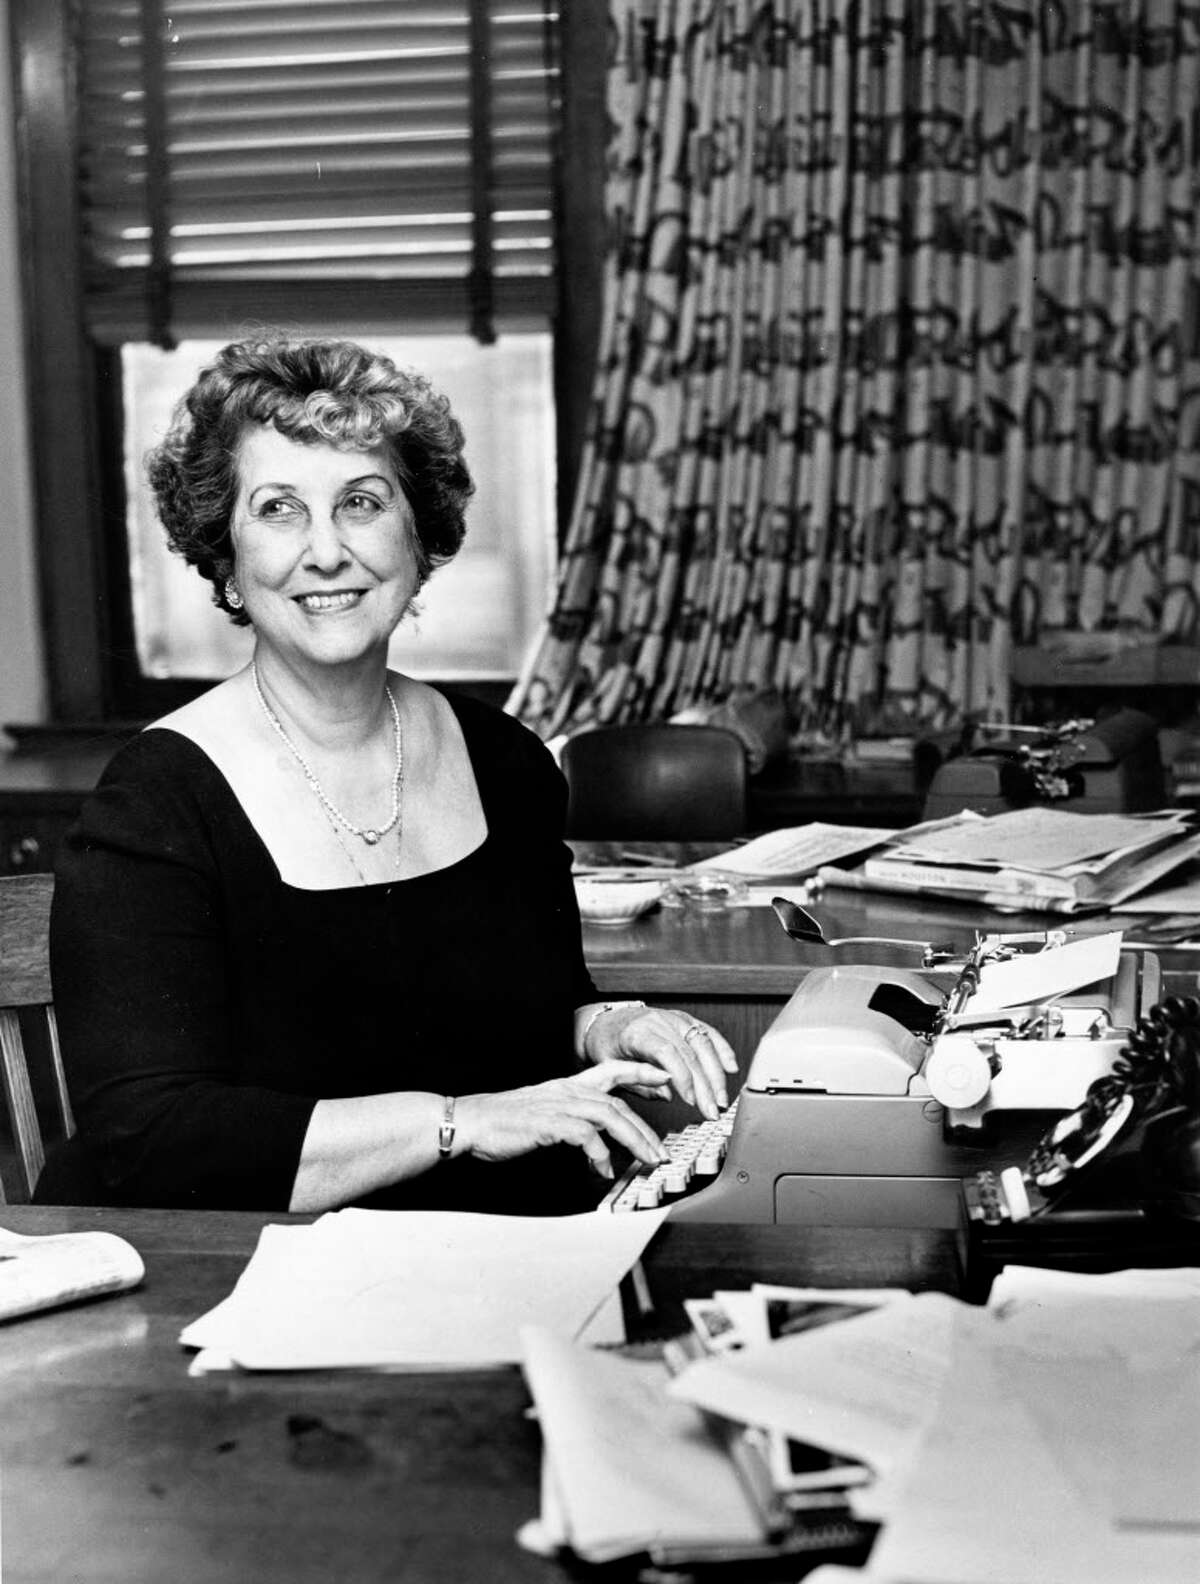 10/07/1960 - Houston civic leader Lyndall Wortham has been a resident of Houston since 1926.